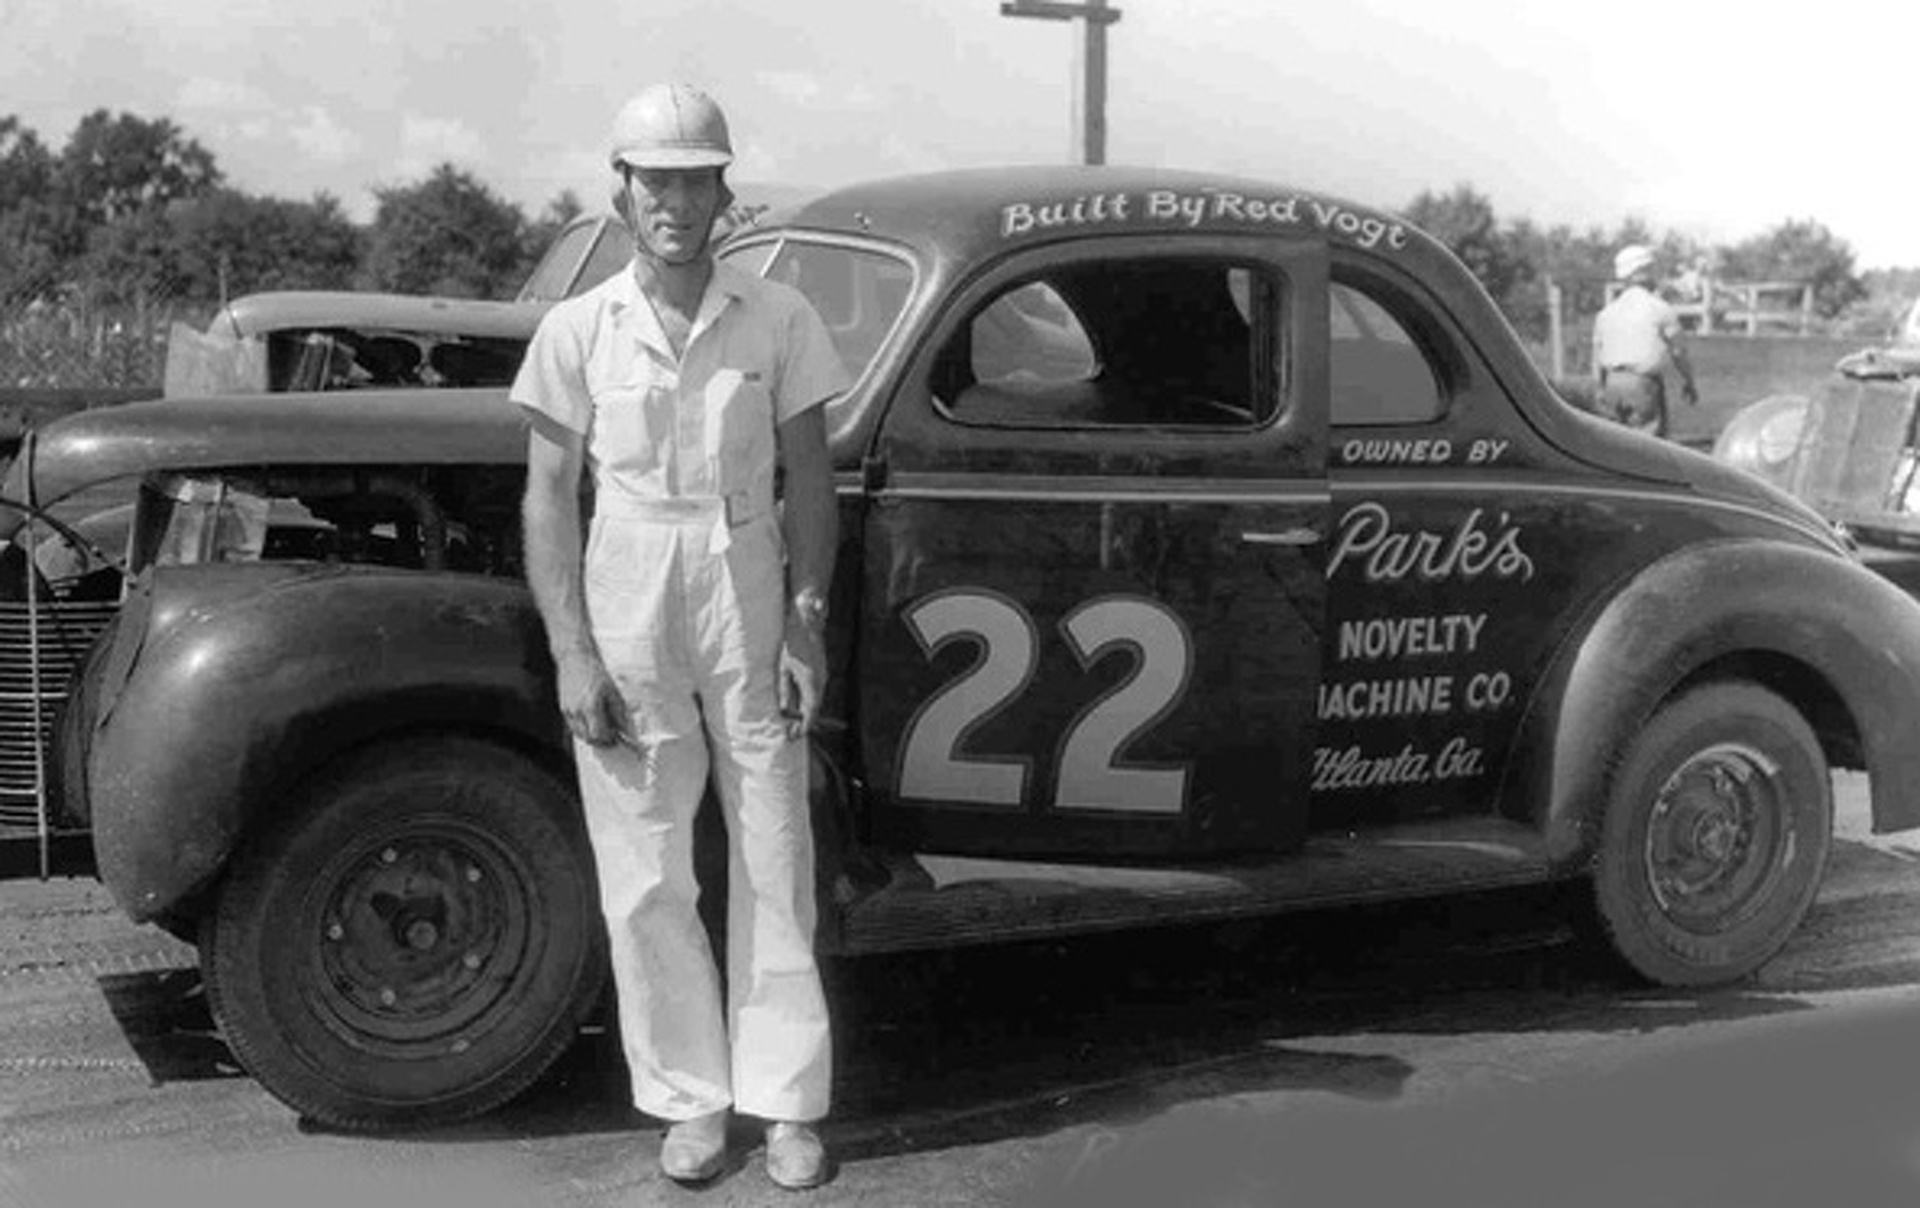 Bootlegging and NASCAR: From Moonshining to Racing